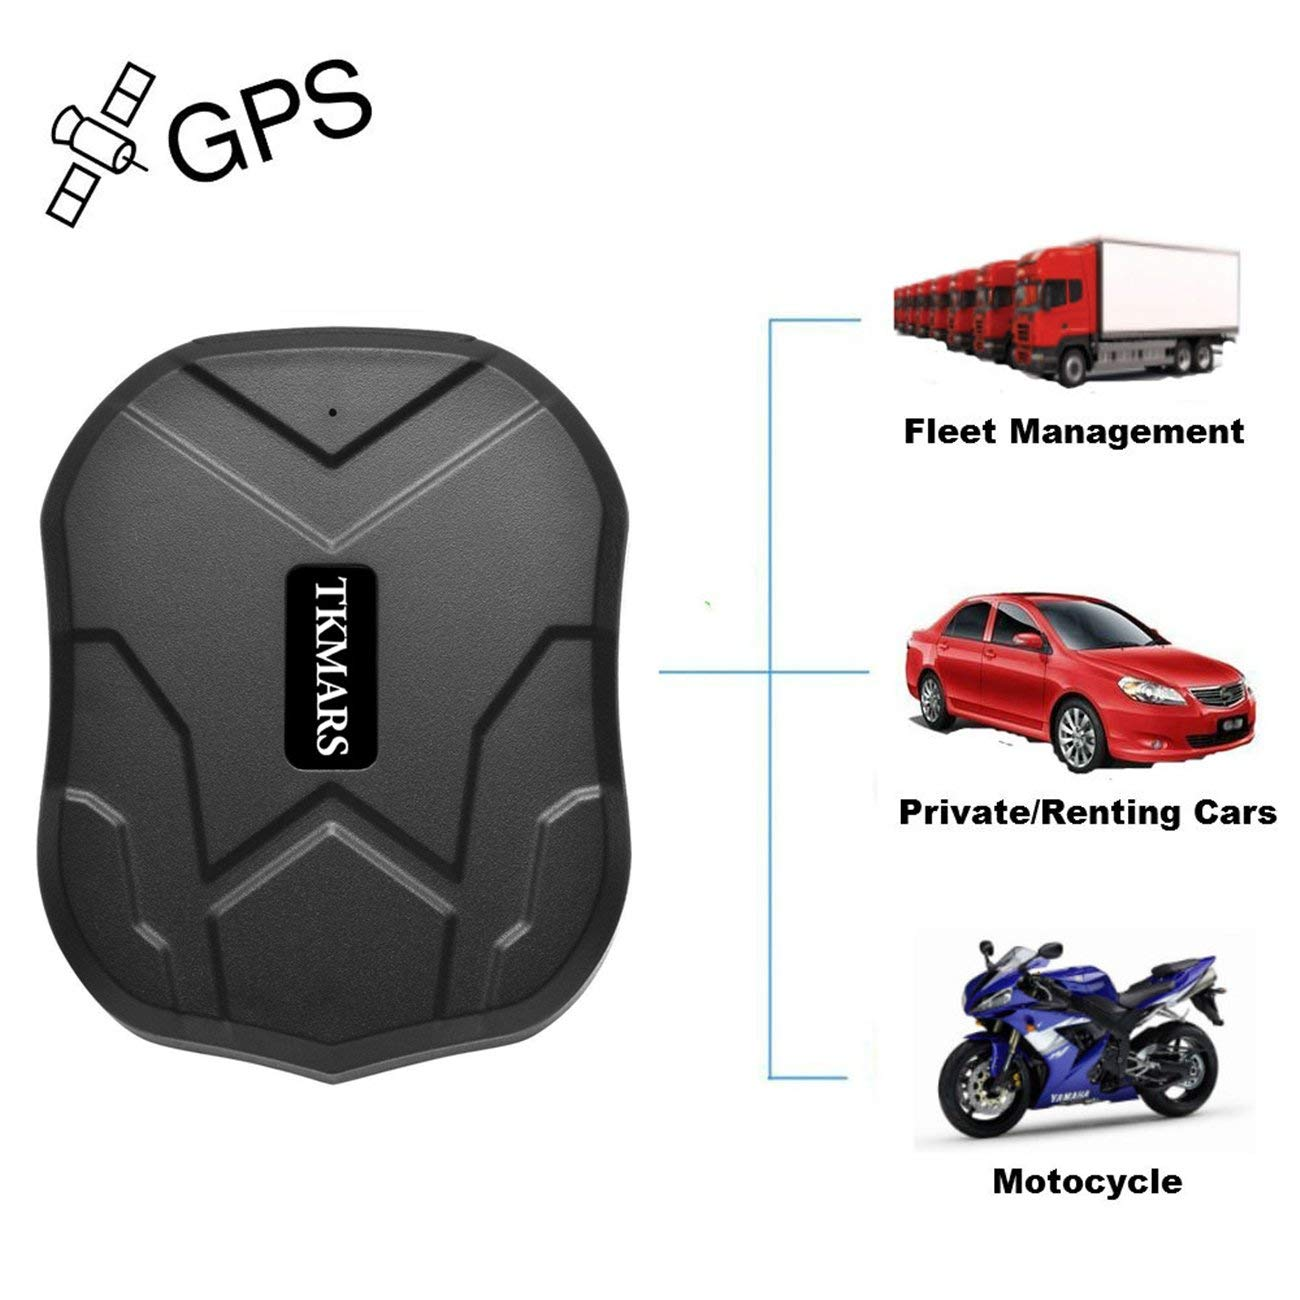 Vehicle Tracker,Hangang GPS Tracking Device Location Tracker Remote Monitoring Real-time Tracking Cars/Vehicles Waterproof,90 Days Standby Time